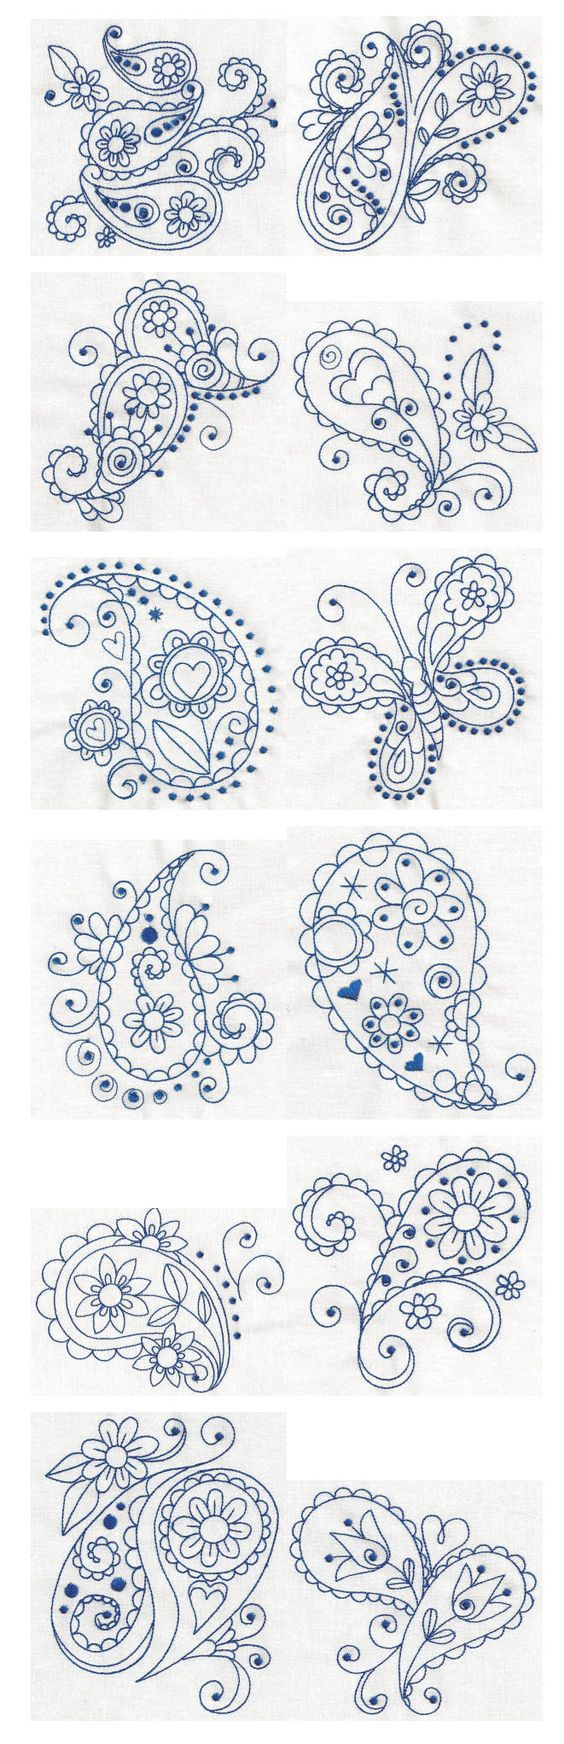 print out these Paisley patterns, lay over your iced (dry) cookie and use pins to transfer the outline through the paper, remove, then pipe: